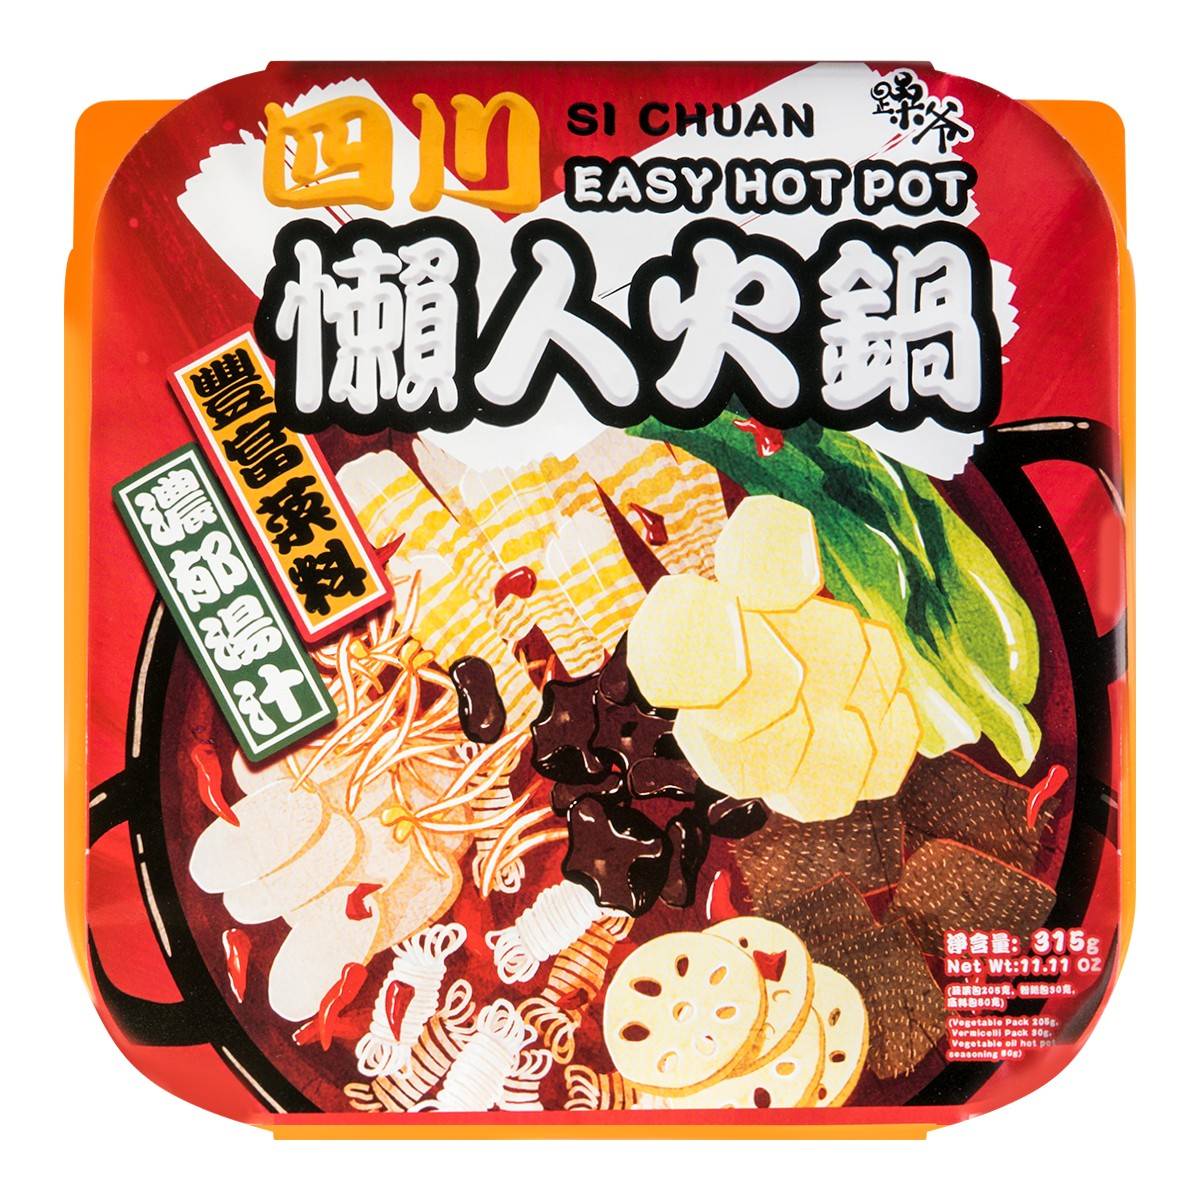 SI CHUAN Easy Hot Pot 315g